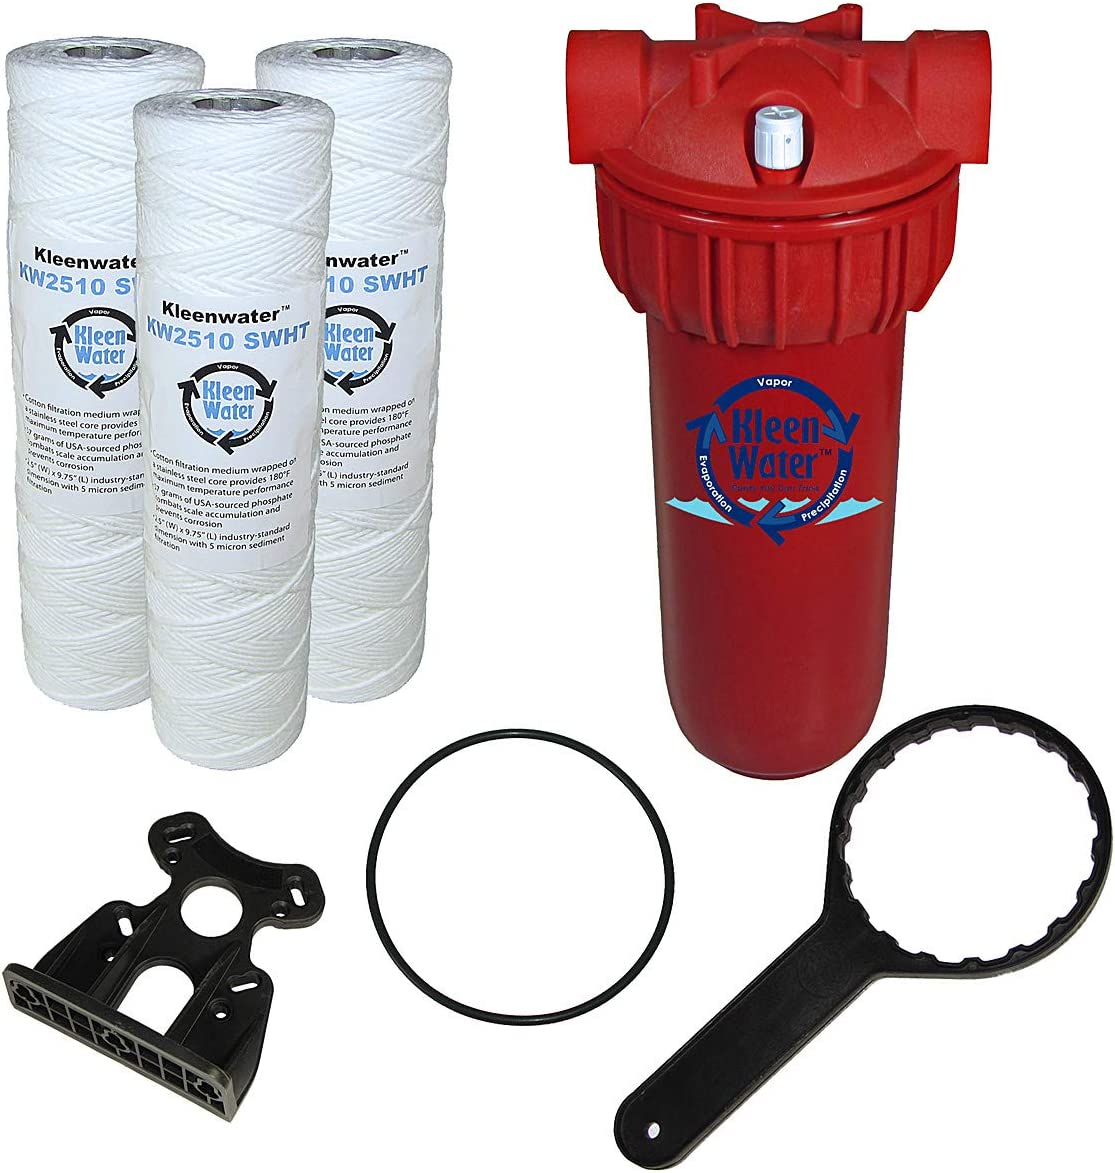 Very popular Hot Water Filter System KleenWater Premier Temper High Surprise price KWHW2510